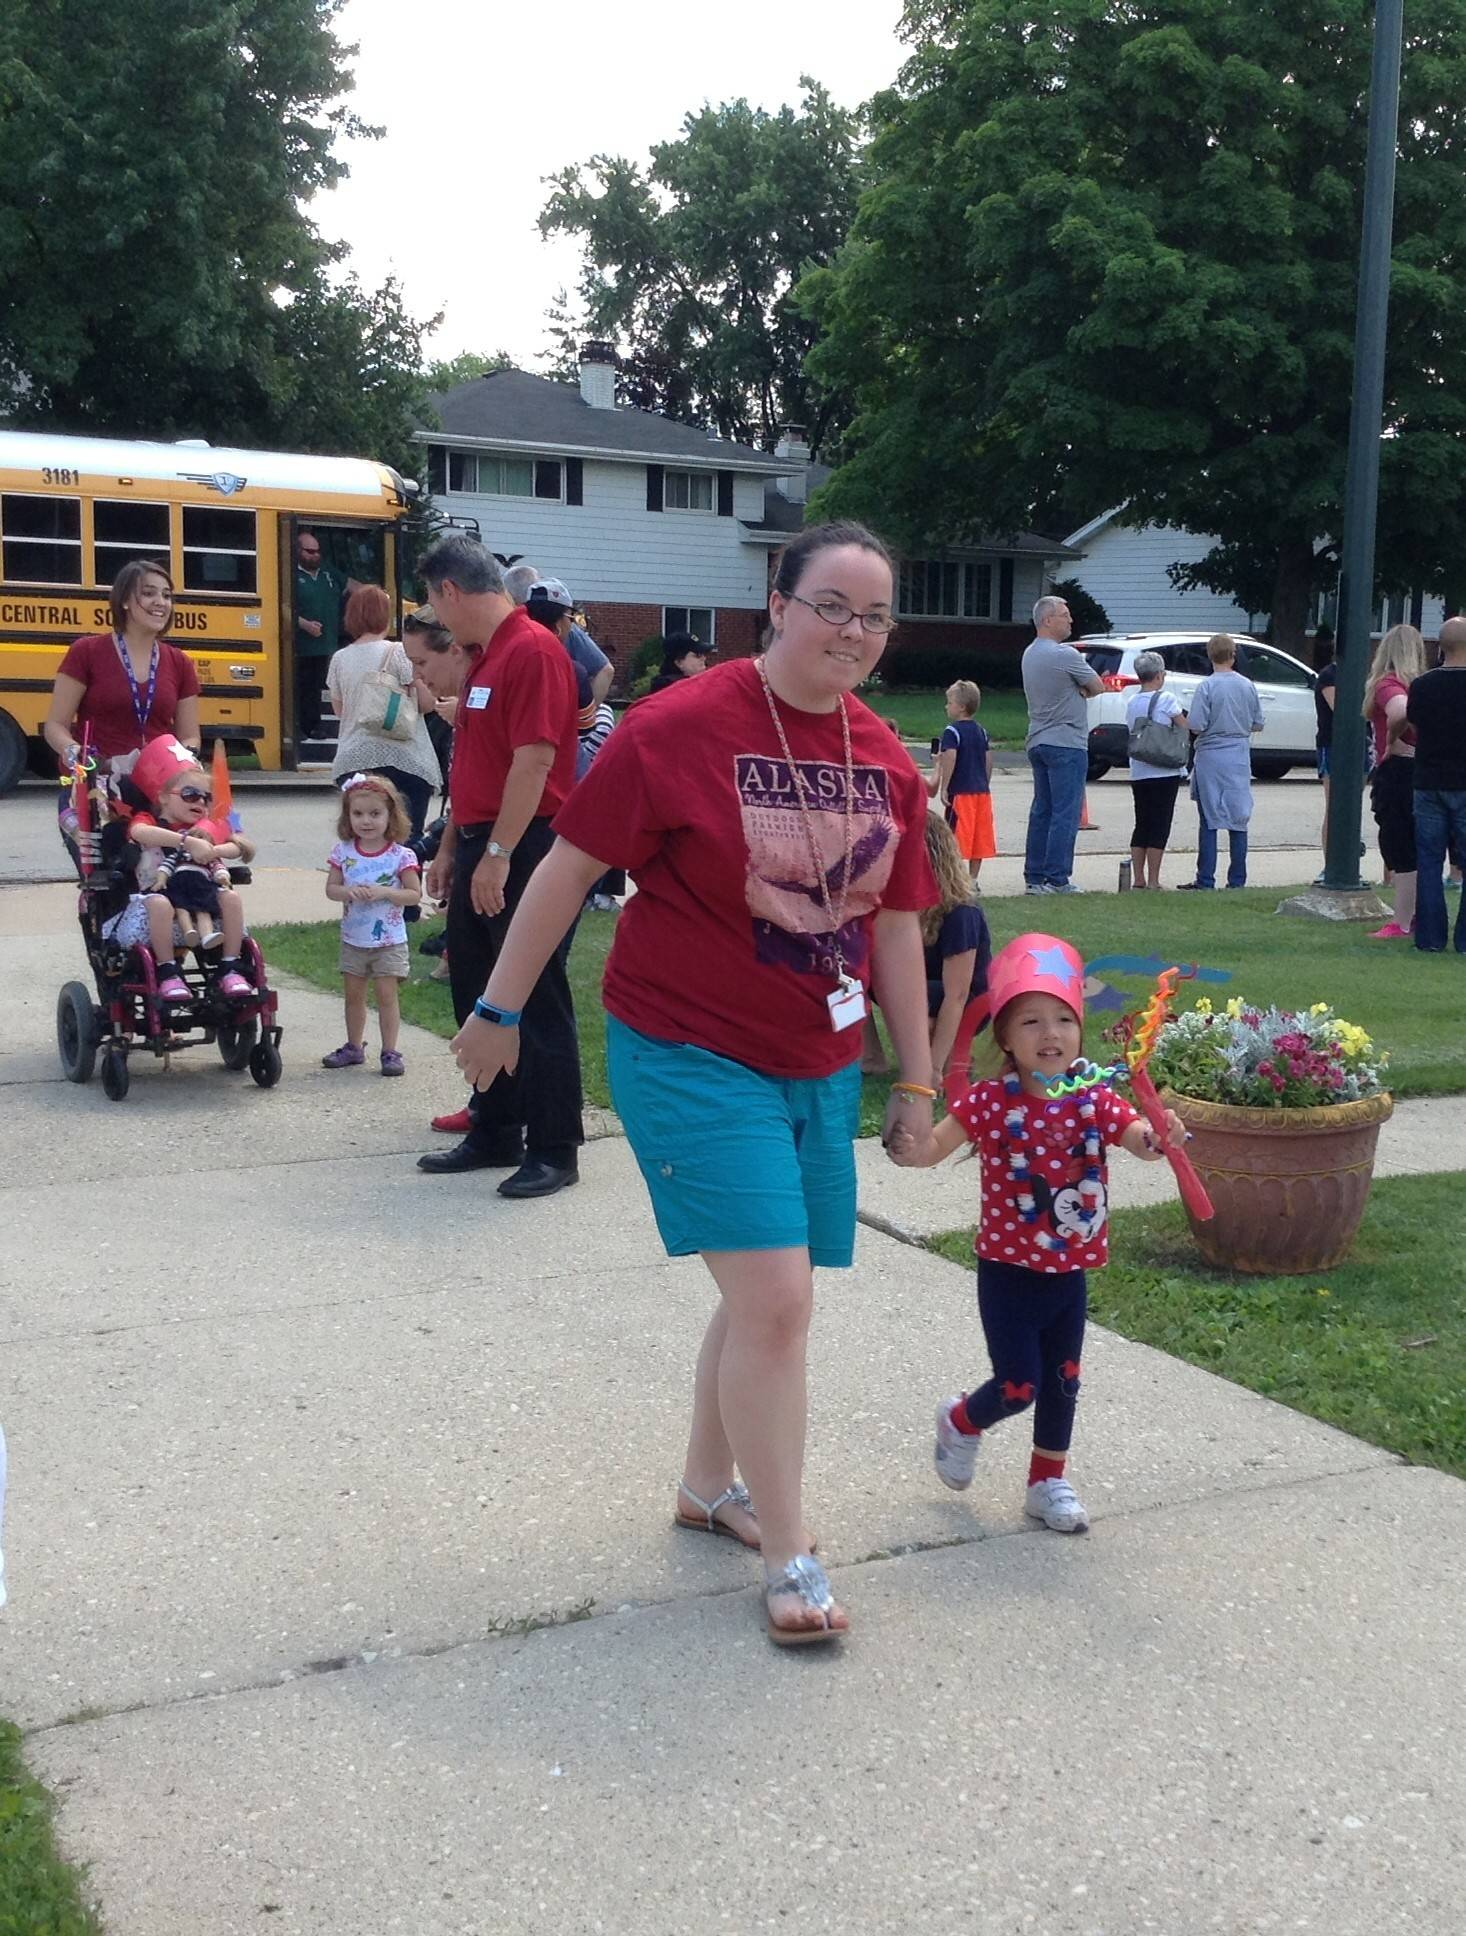 Teachers and students walk together in an early July 4 parade Thursday at Jefferson Middle School in Wheaton.